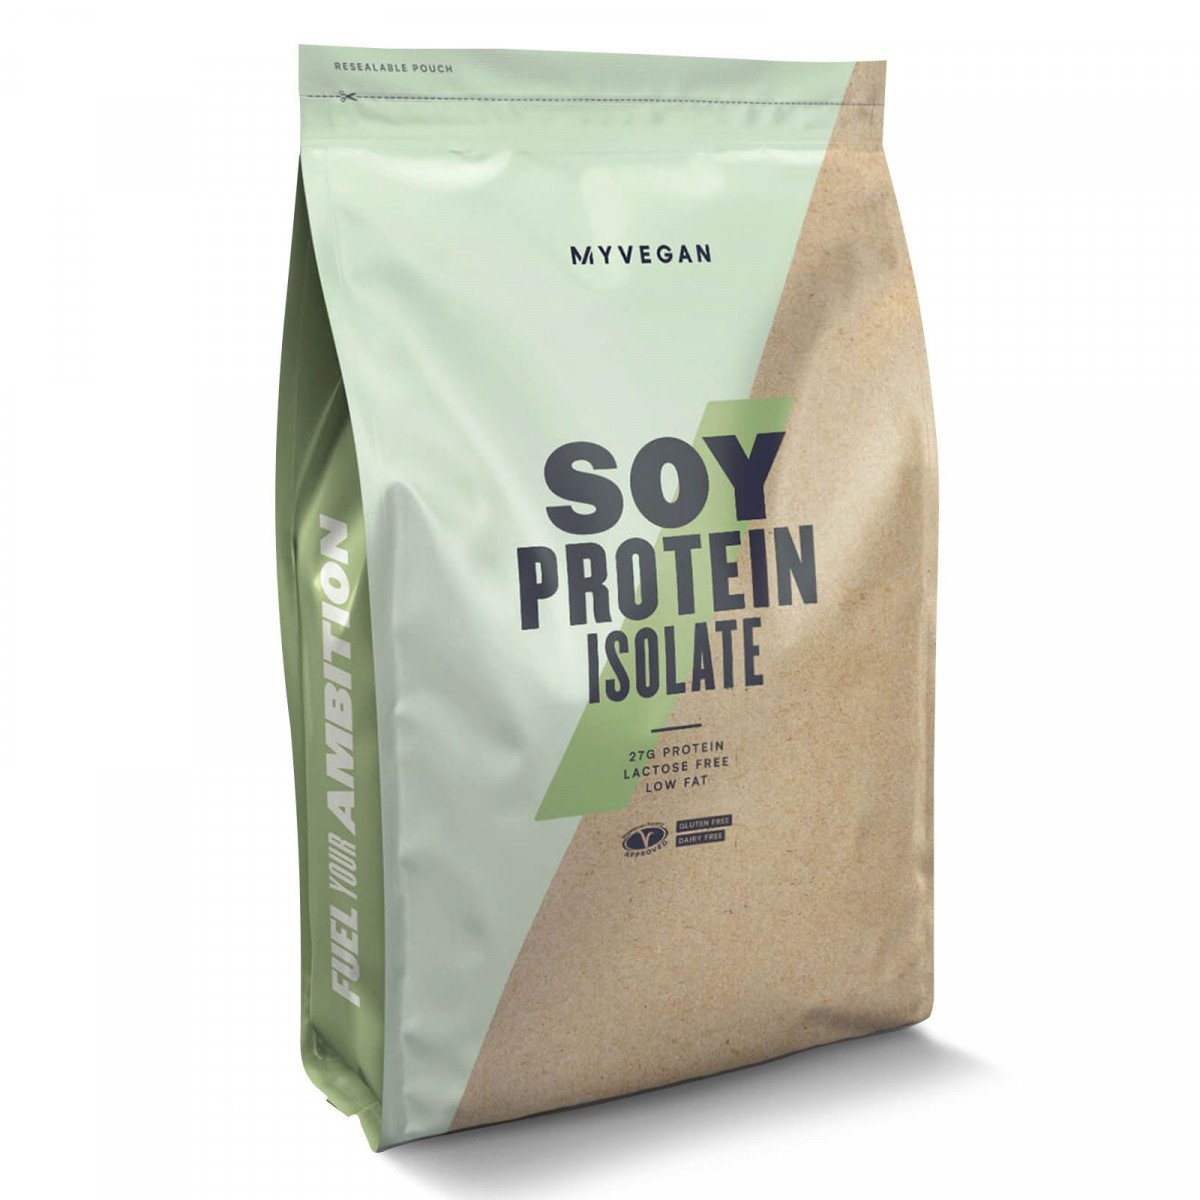 Soy Isolate Myprotein